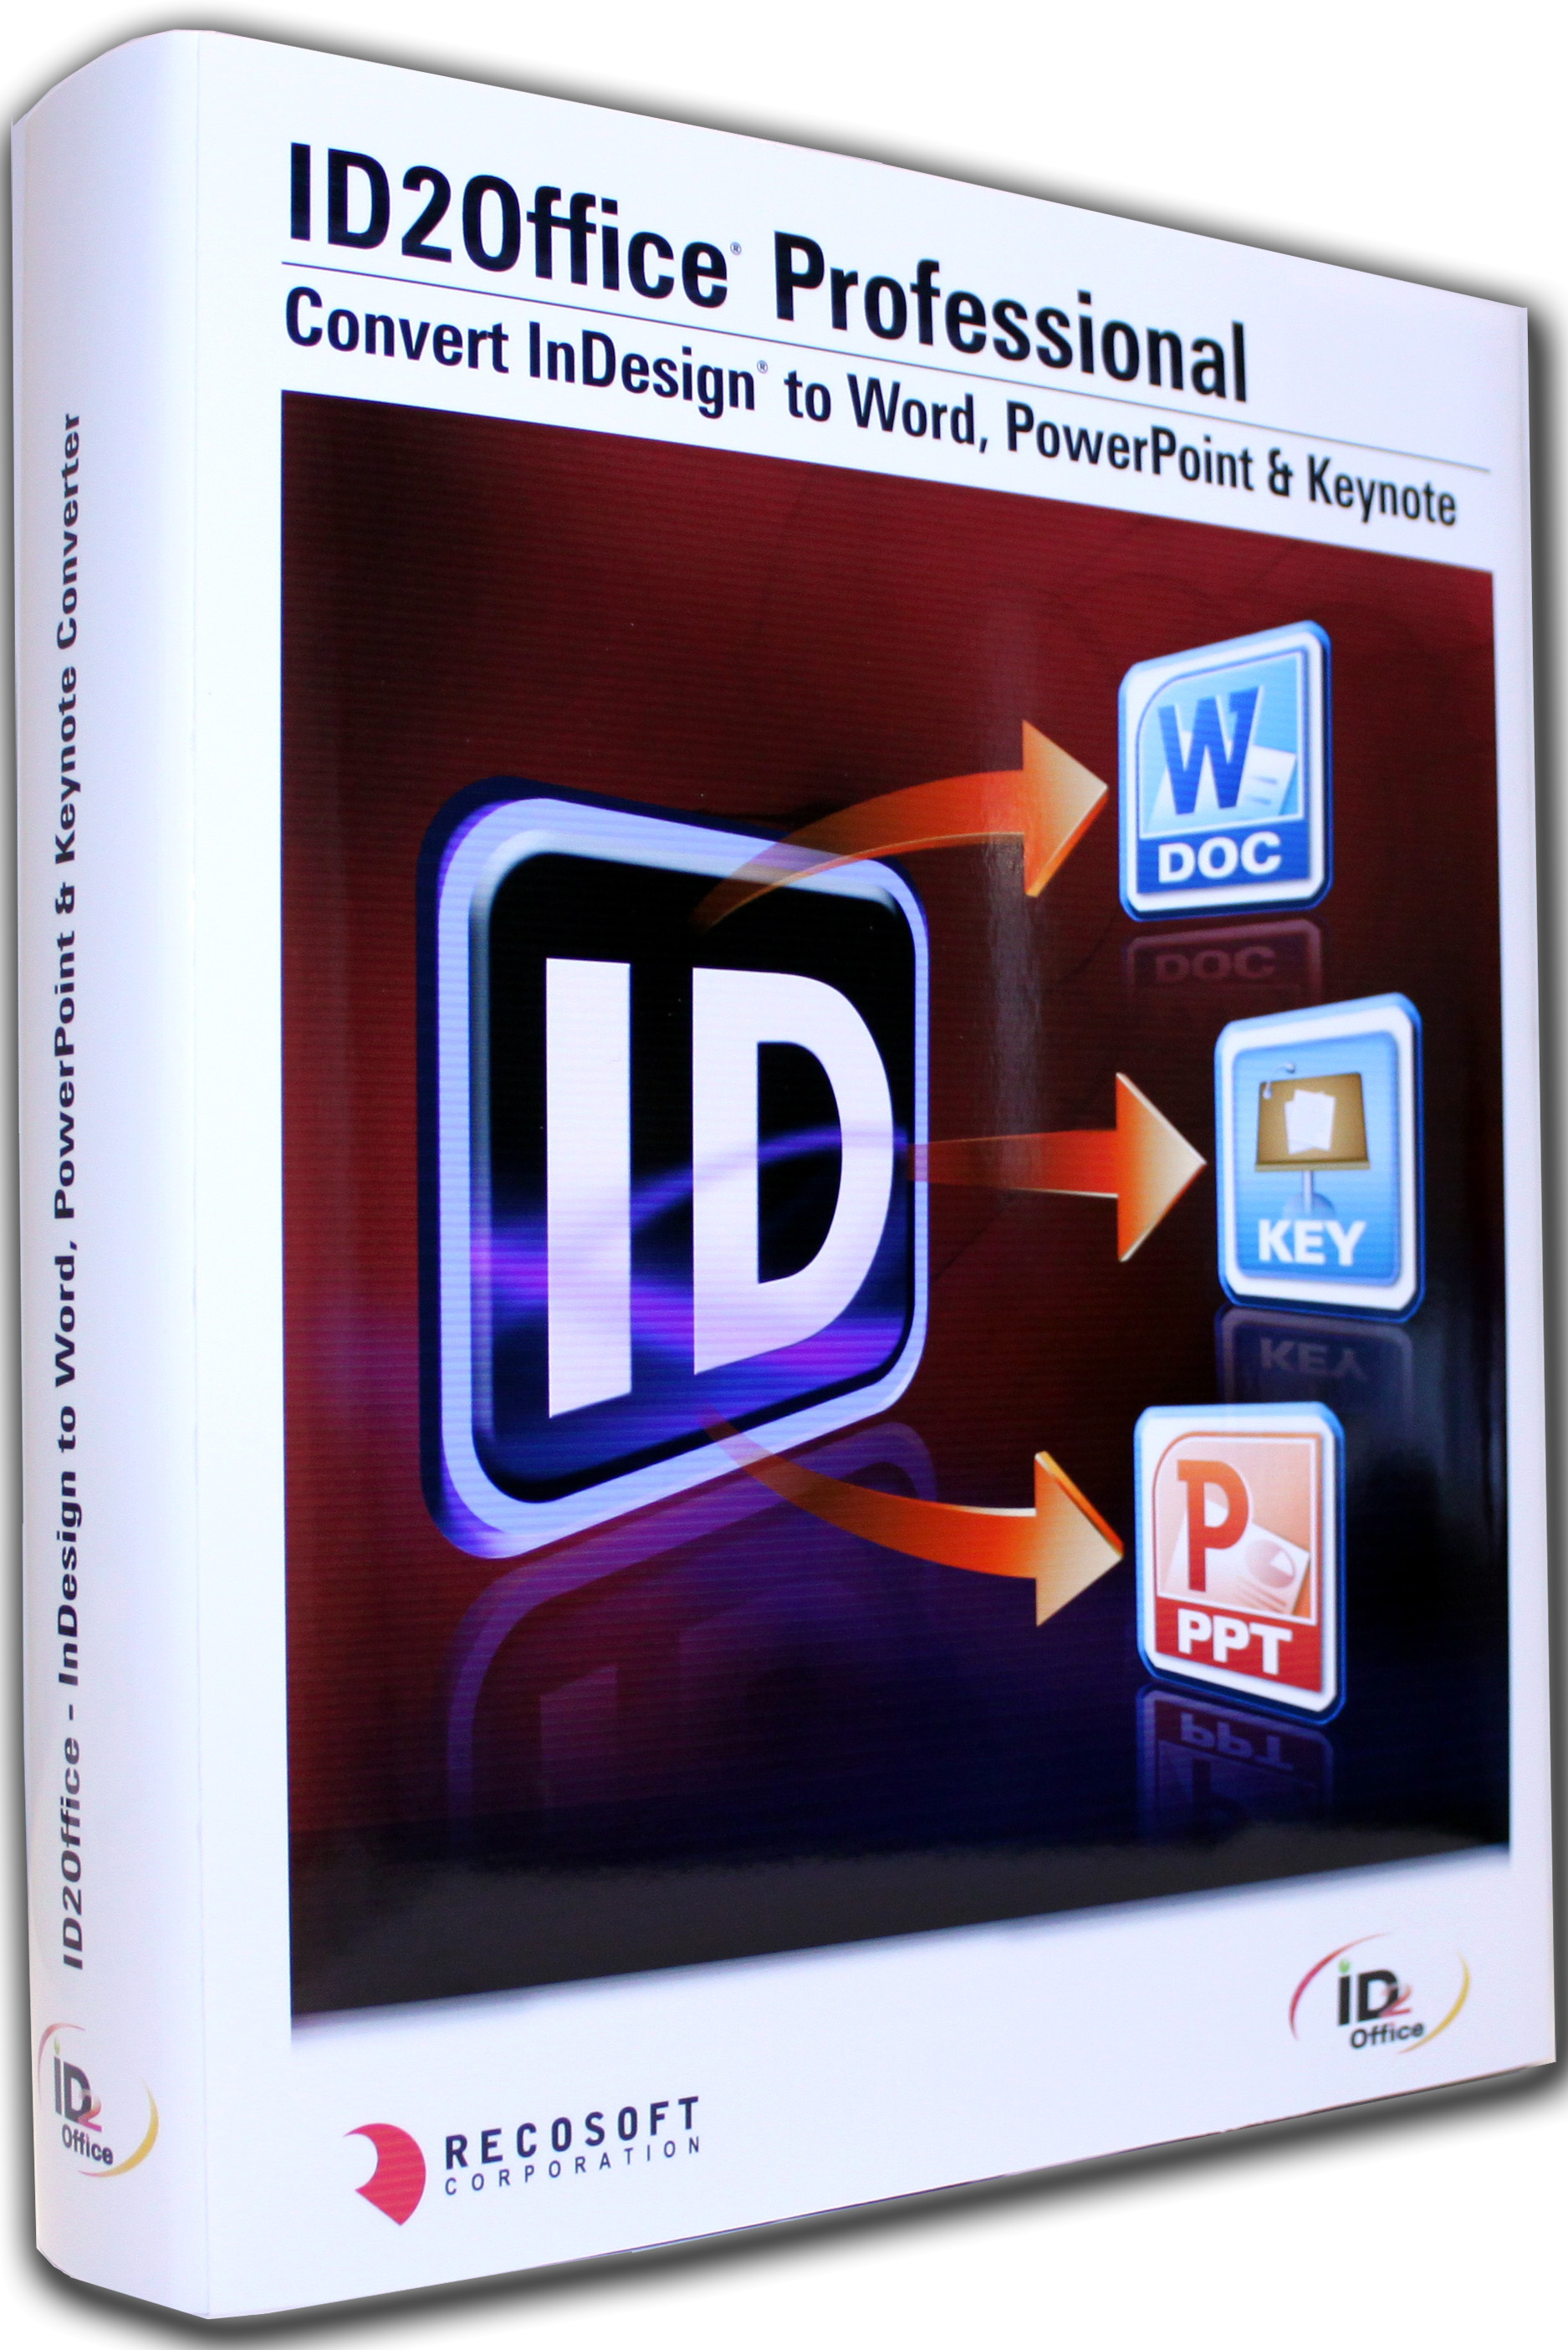 Recosoft ships ID2Office v2 1 – Convert InDesign files to Word